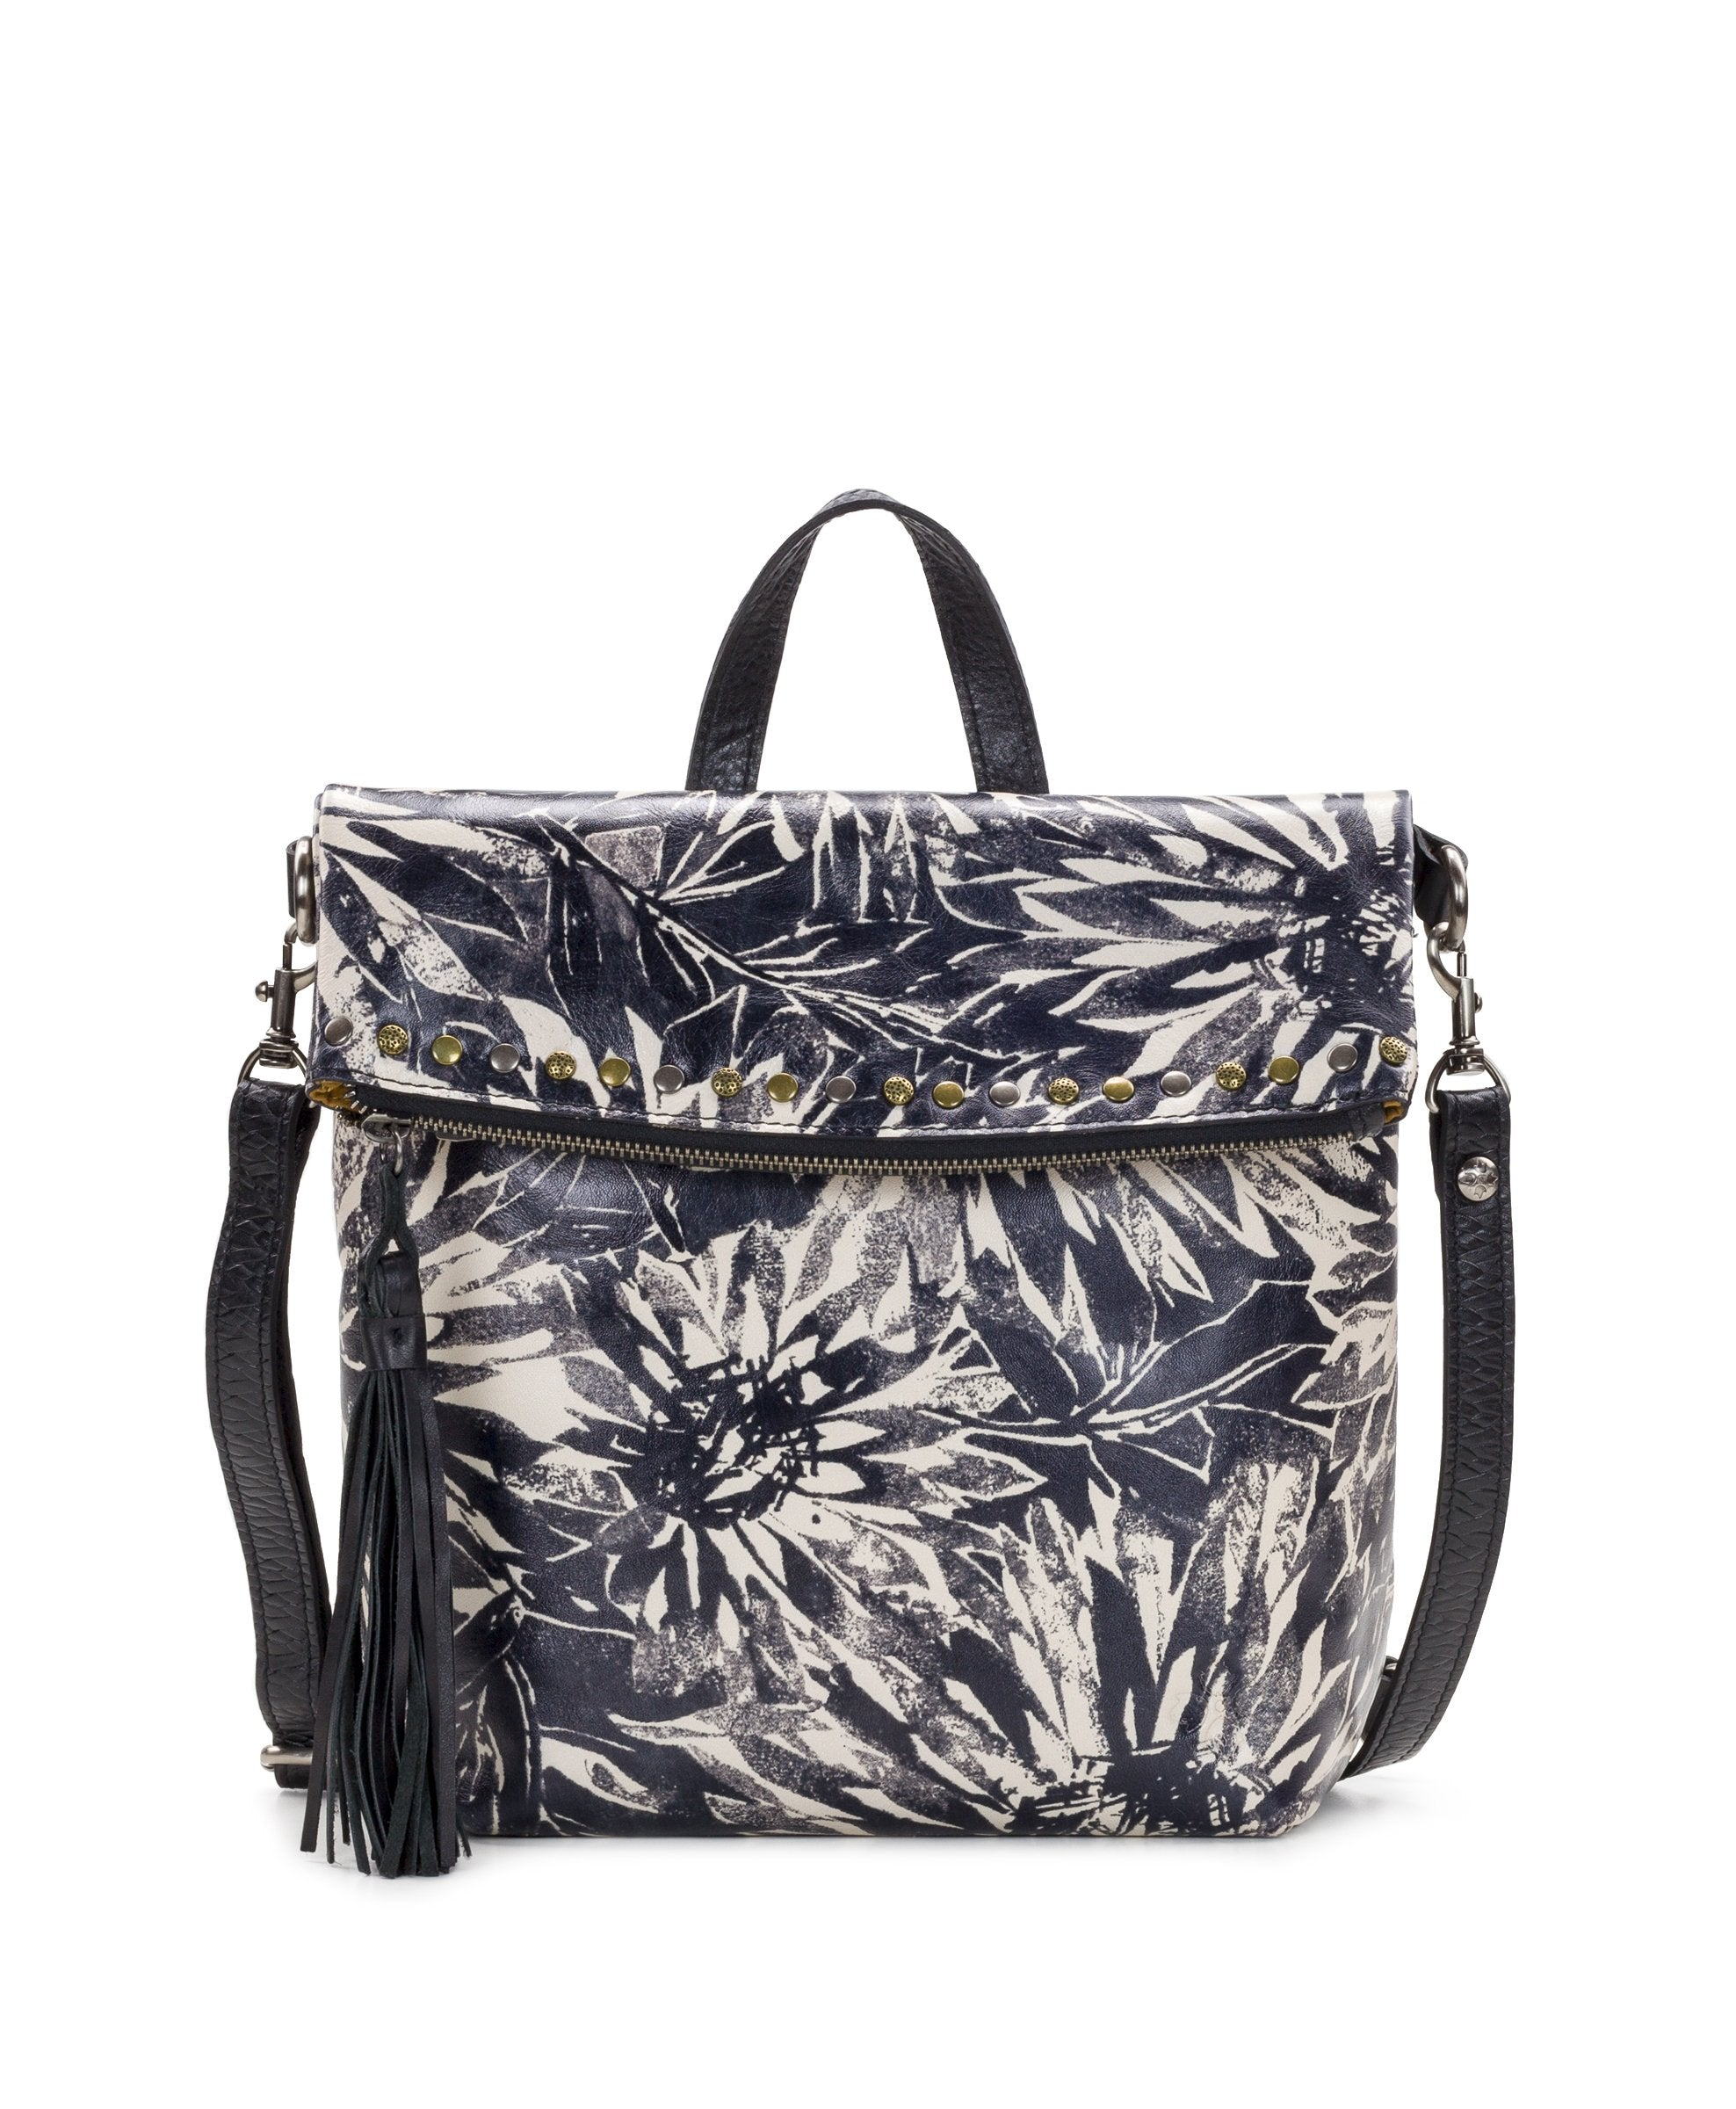 Luzille Backpack - Sunflower Print